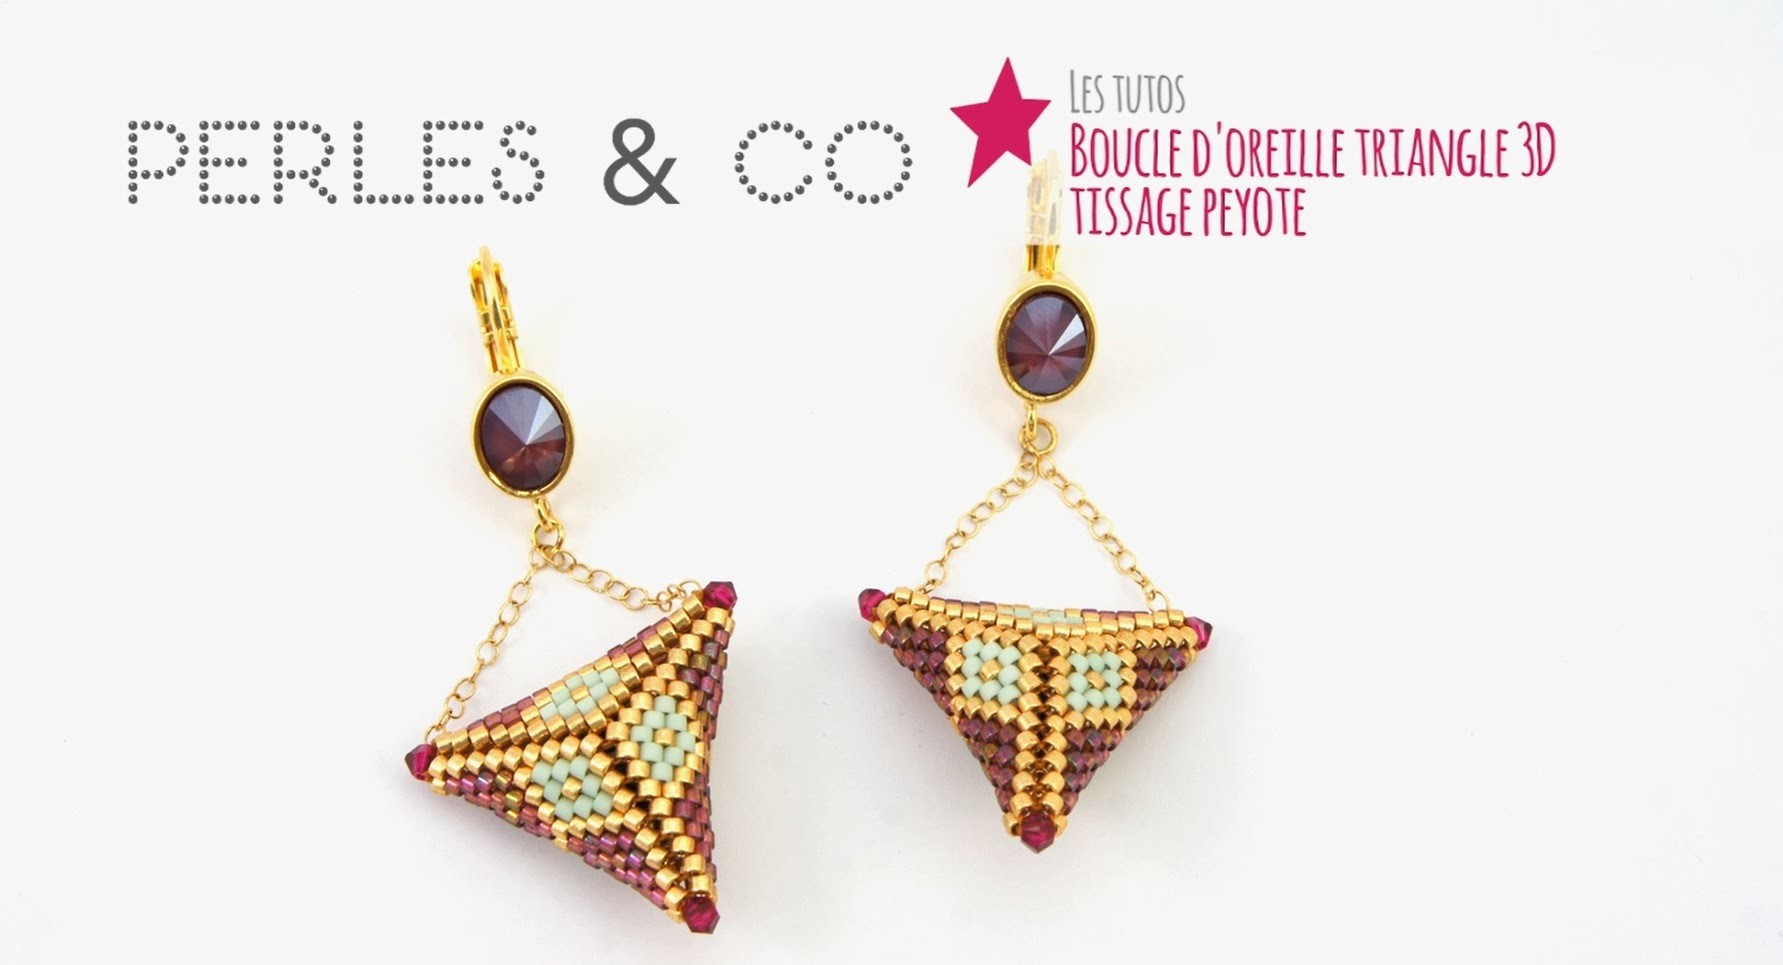 tuto diy cr er des boucles doreilles triangles 3d en tissage peyote avec des miyuki et swarovski. Black Bedroom Furniture Sets. Home Design Ideas